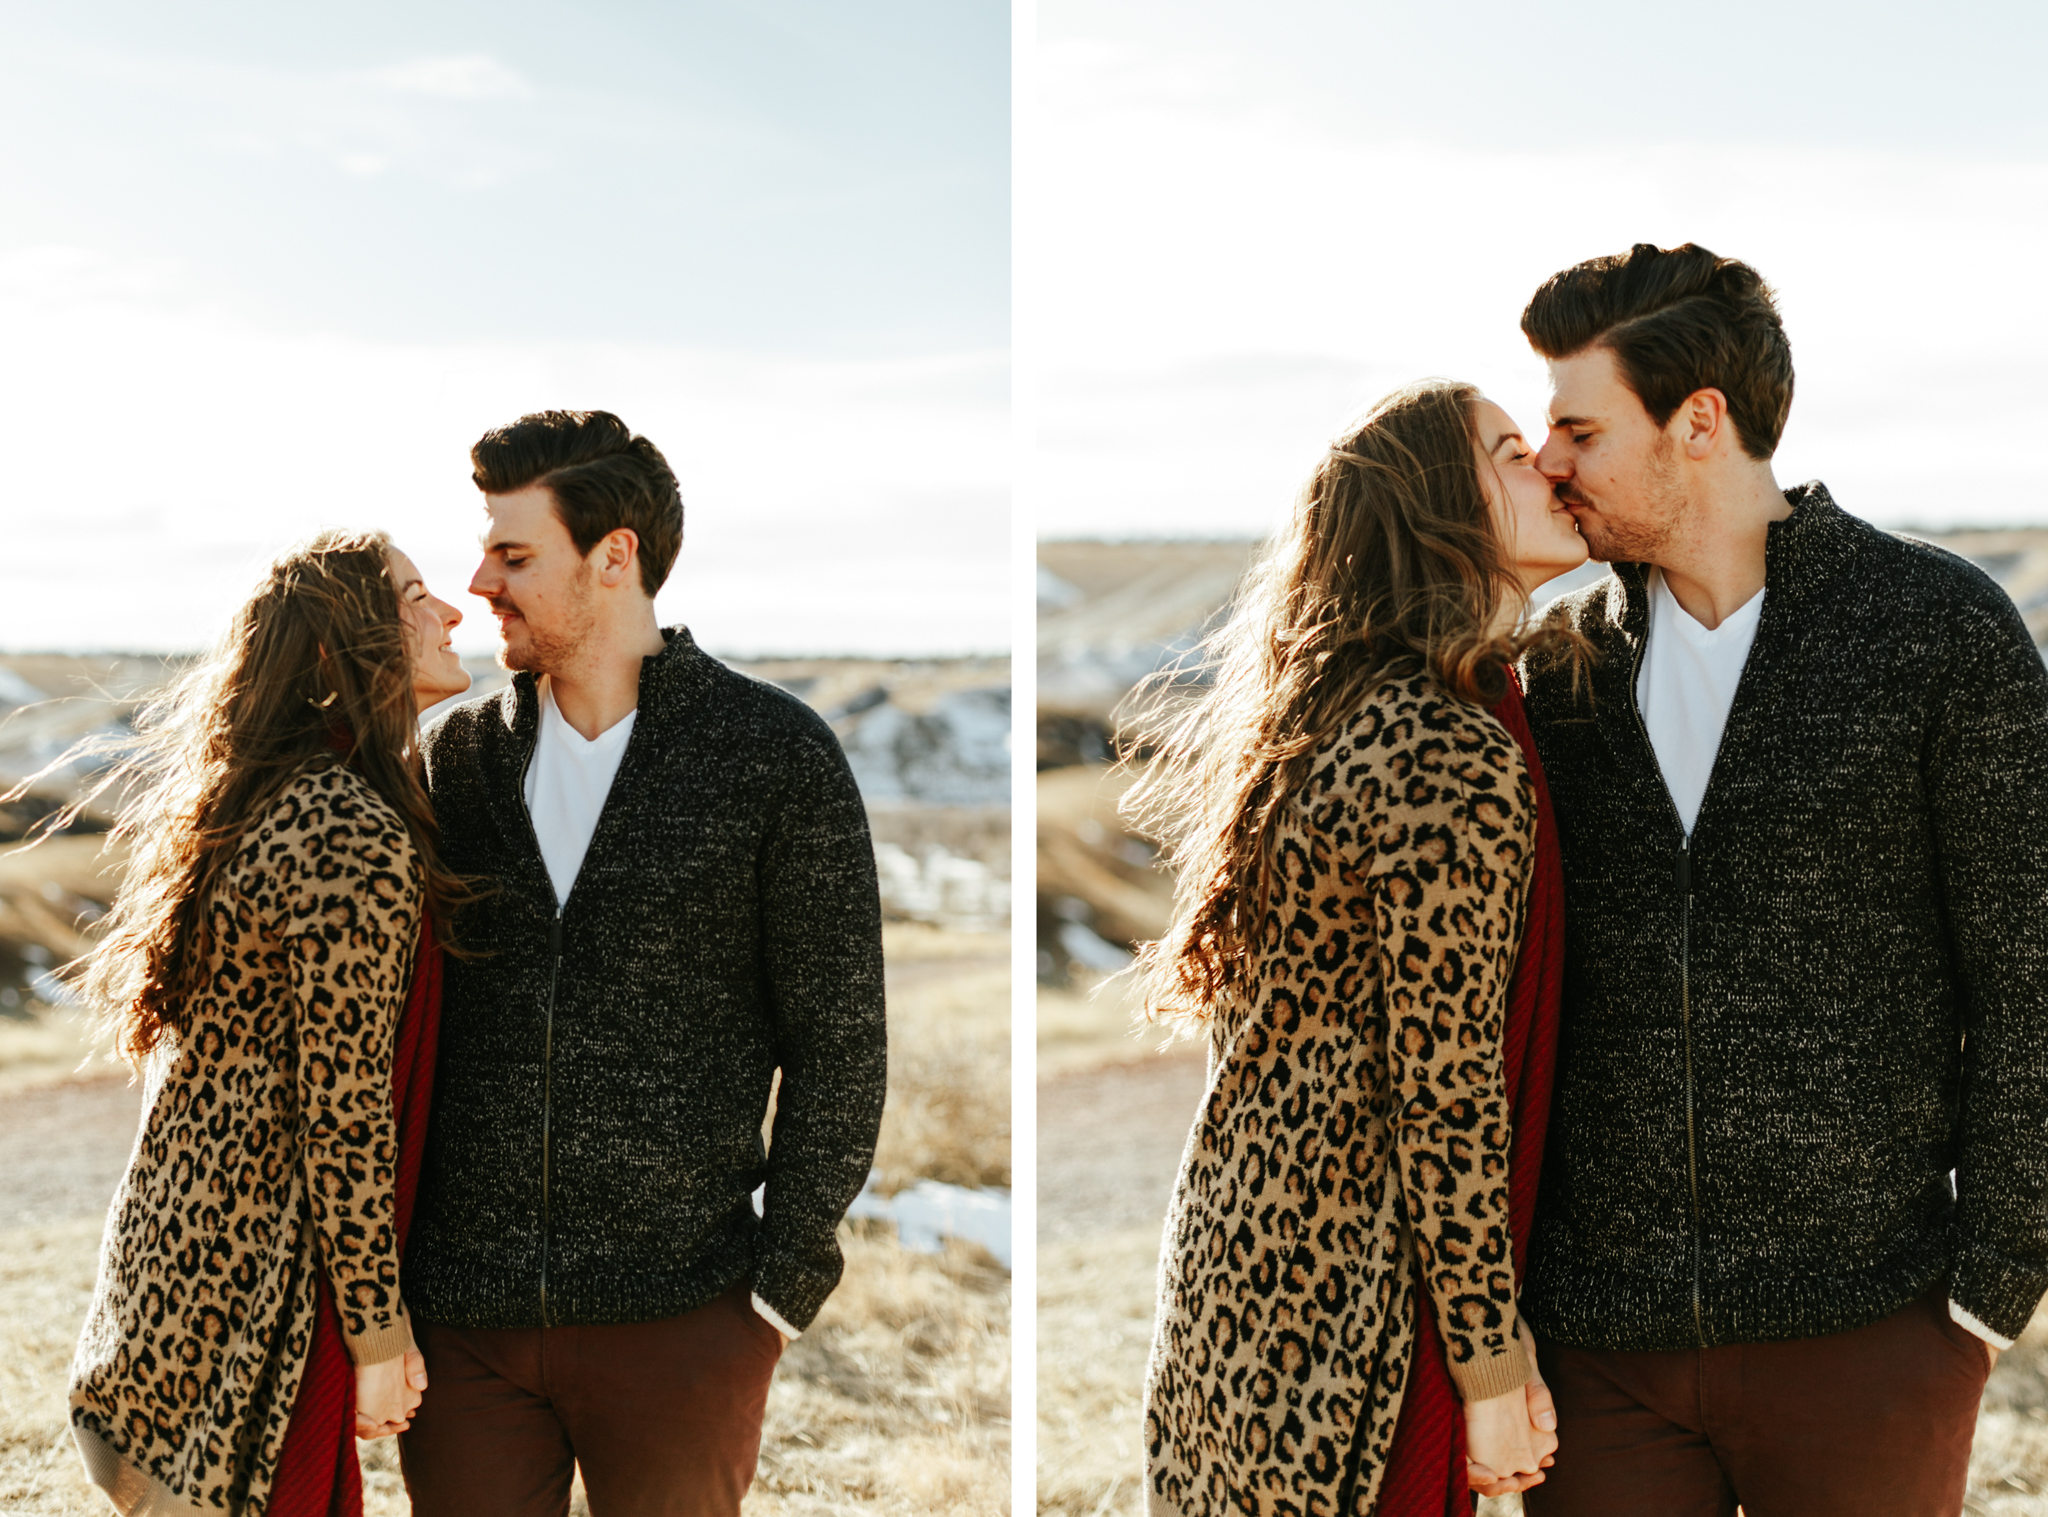 lethbridge-photographer-love-and-be-loved-photography-winter-engagement-emma-tanner-picture-image-photo-102.jpg